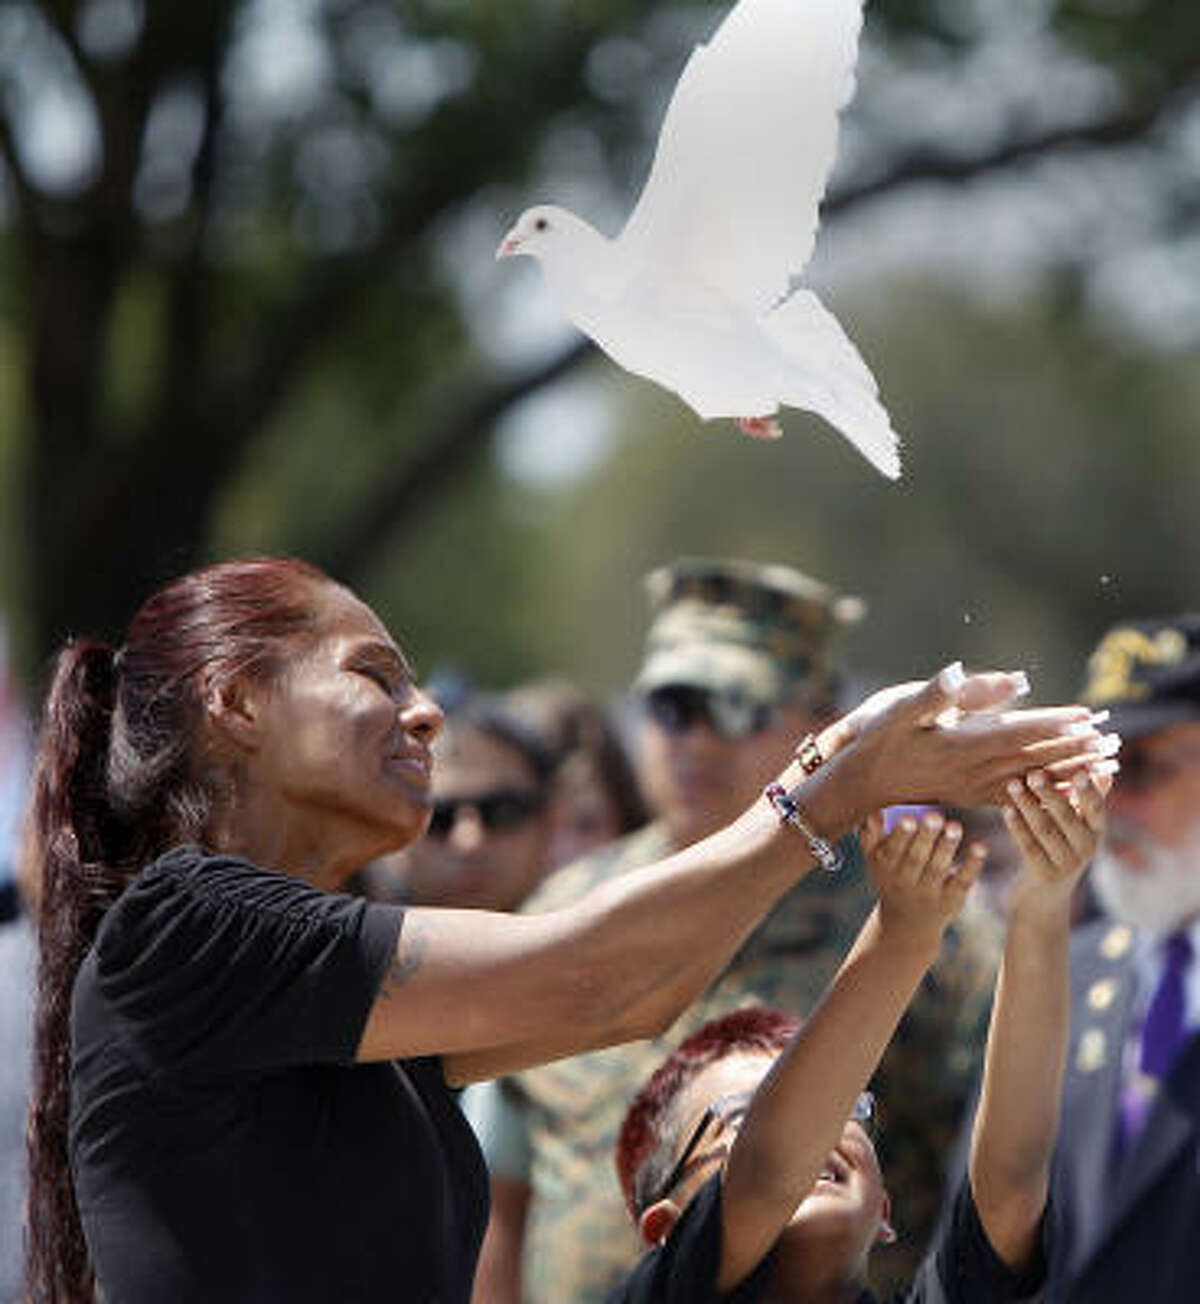 Janie Torres, mother of Army Sgt. Jacob Molina, releases a dove with her youngest son, Shawn Carreon, during burial services Monday at the Veterans Memorial Cemetery.